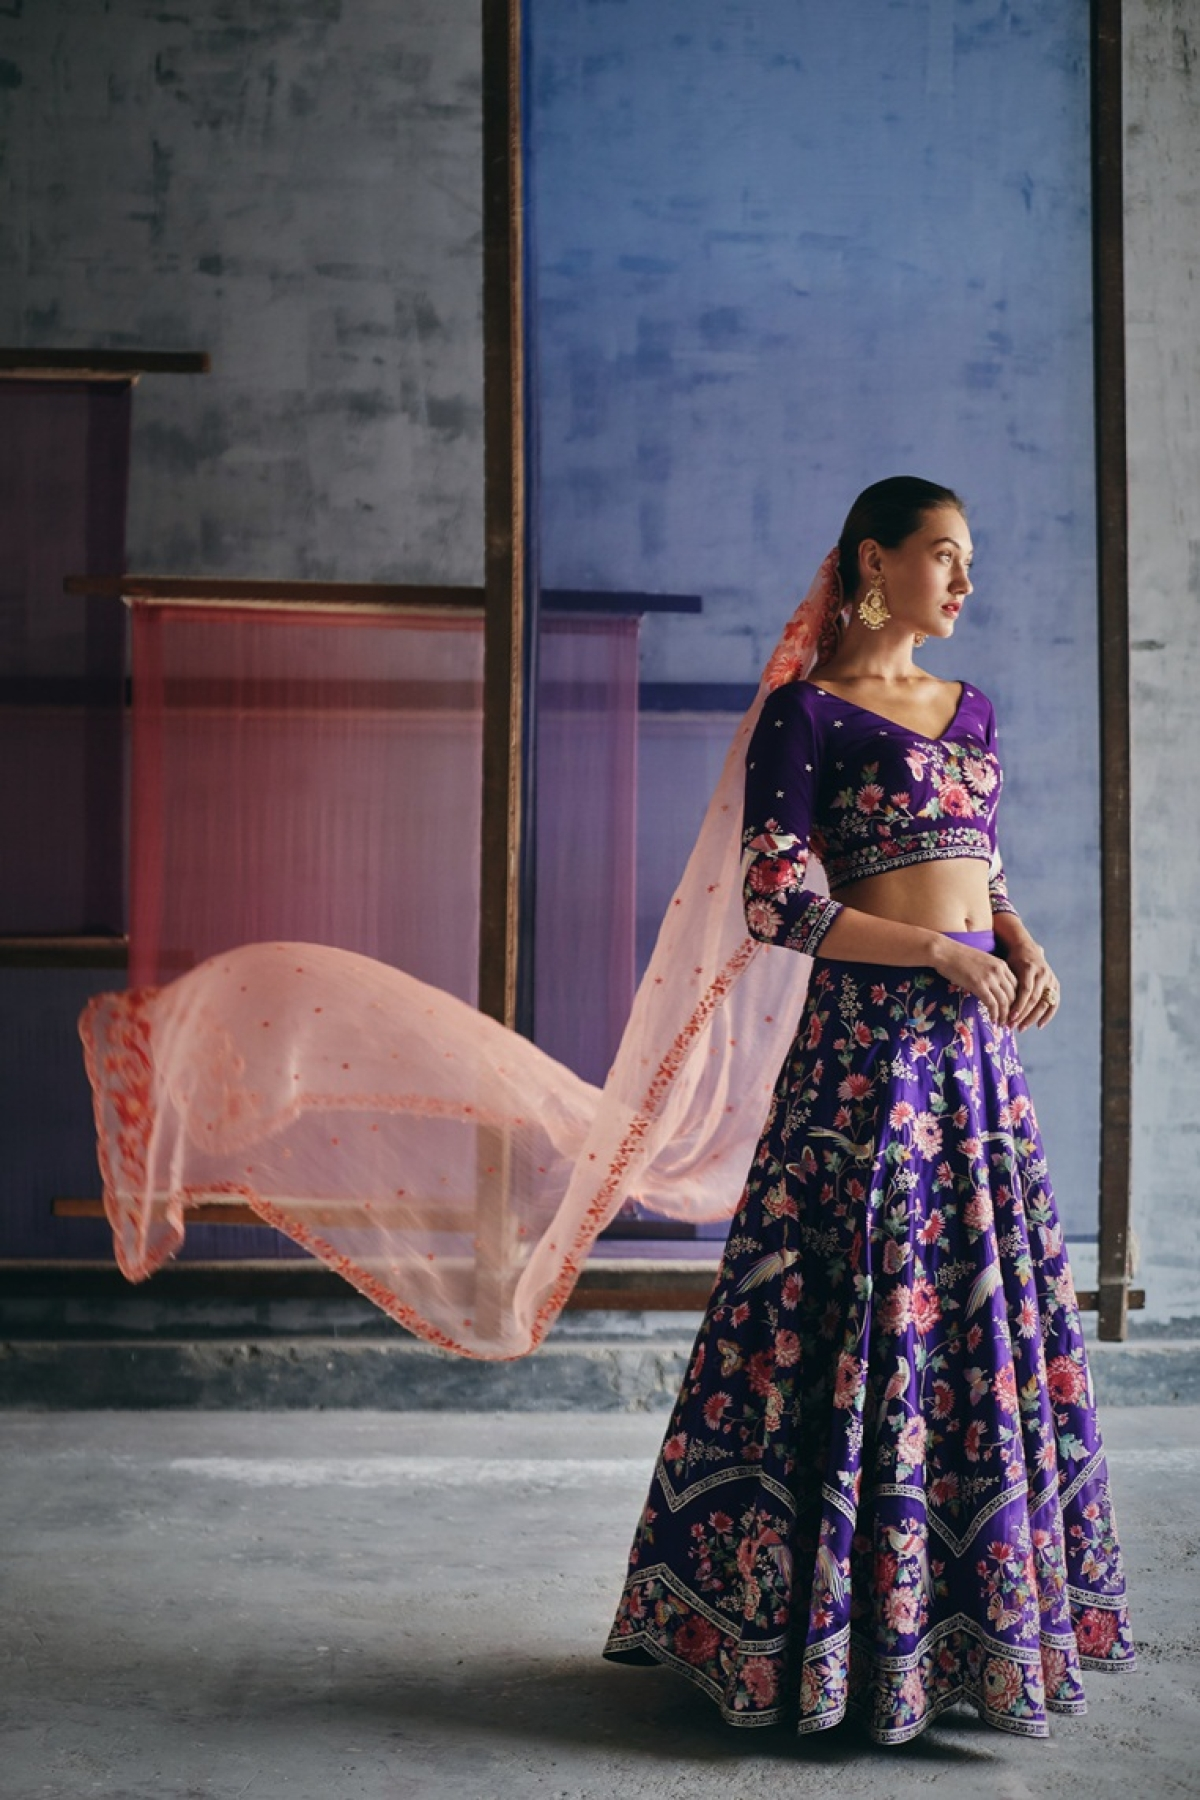 Luxury at needlepoint: From machine-made clothes, designers have now turned to traditional embroideries with a contemporary twist